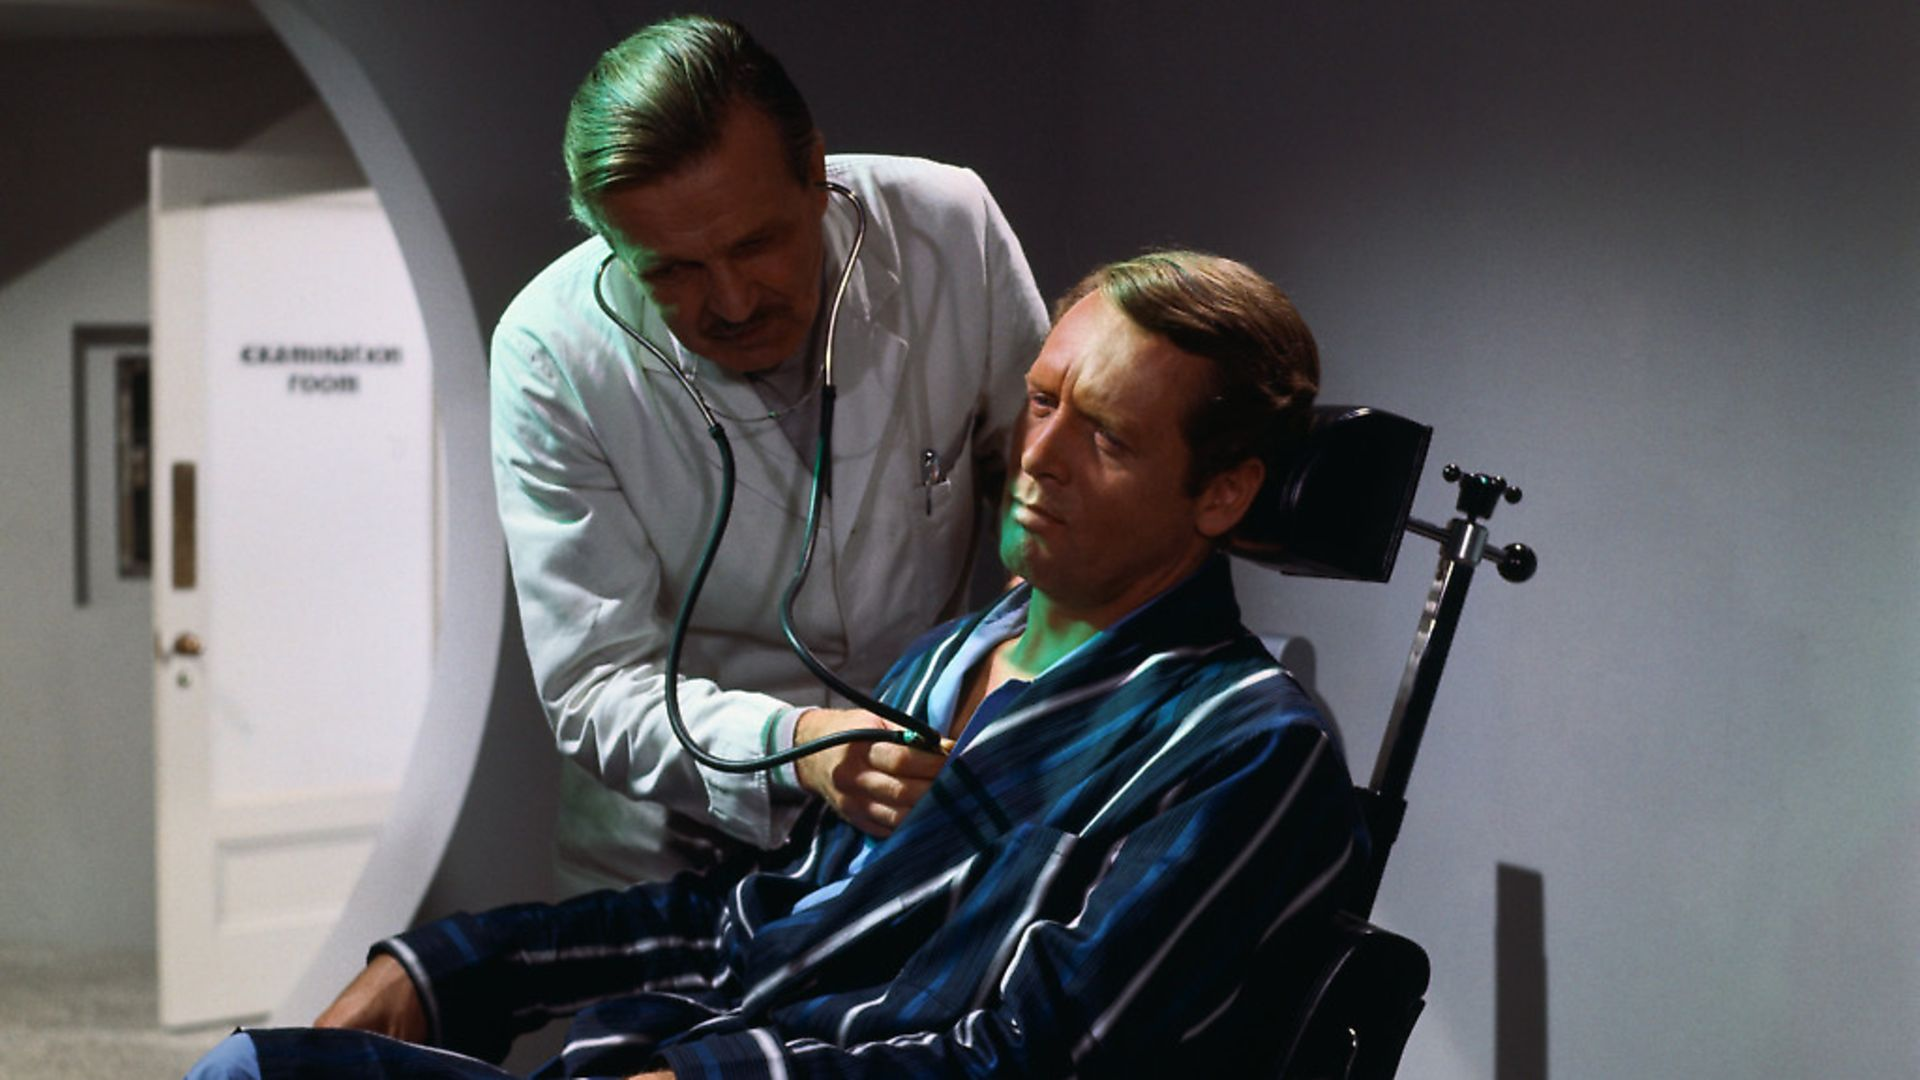 Number 6, played by Patrick McGoohan, is examined by a doctor in The Prisoner (1967). Picture: Getty - Credit: Bettmann Archive